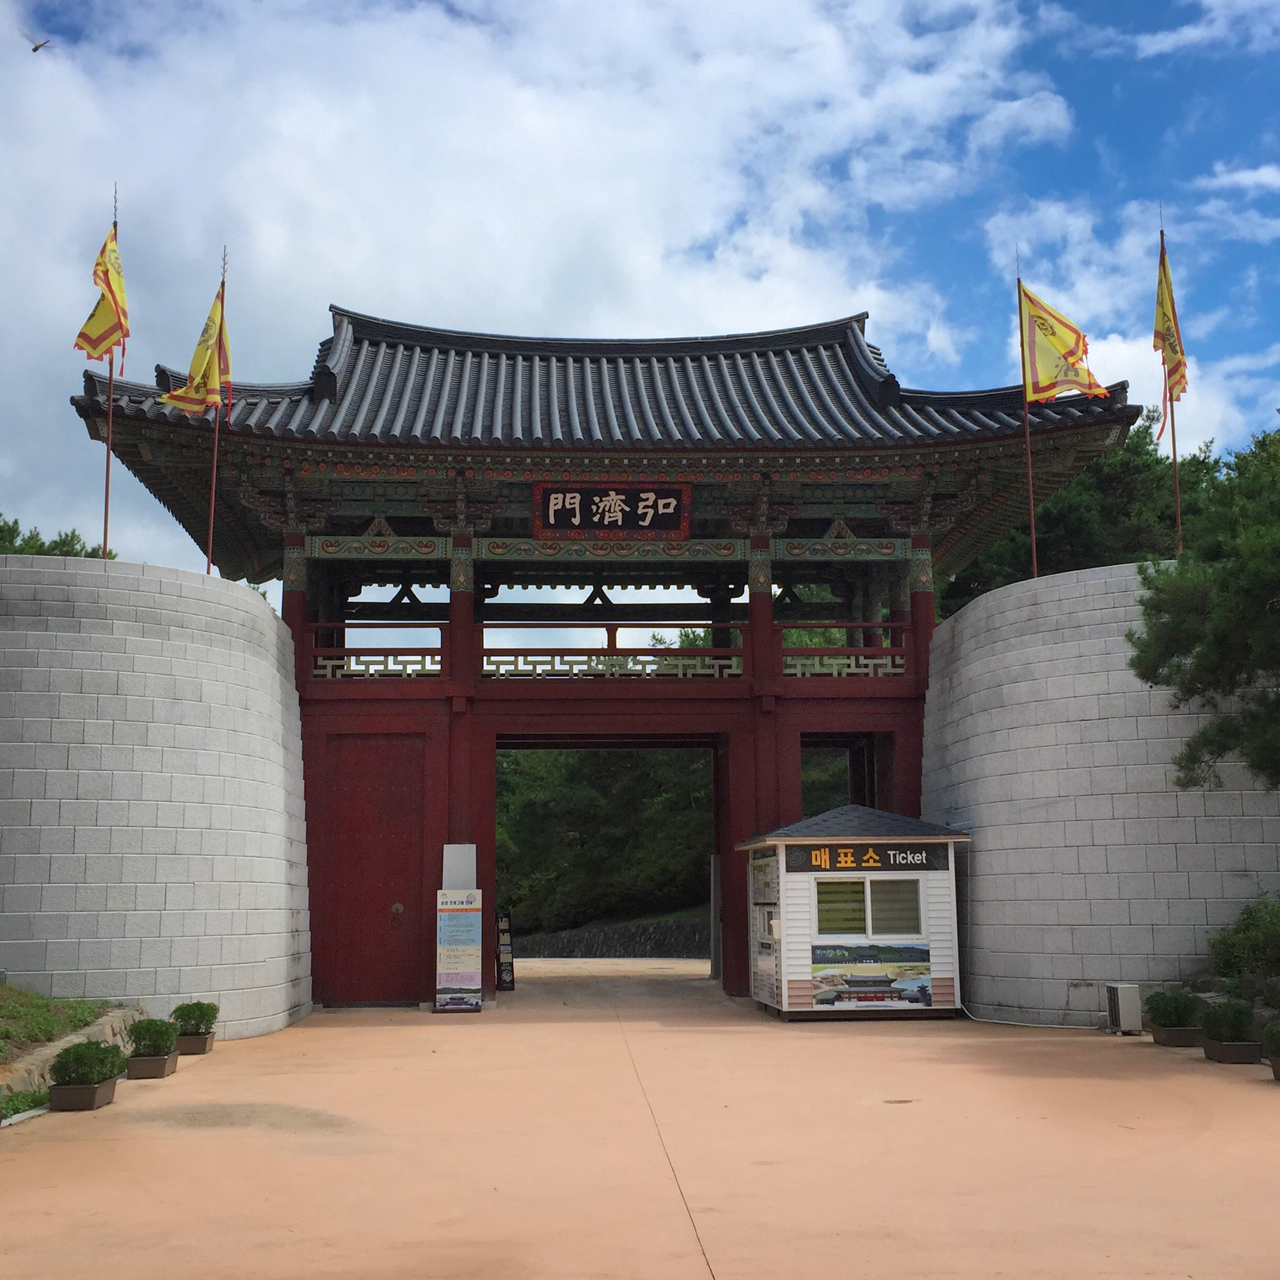 Entrance into the cultural land from the outlet mall